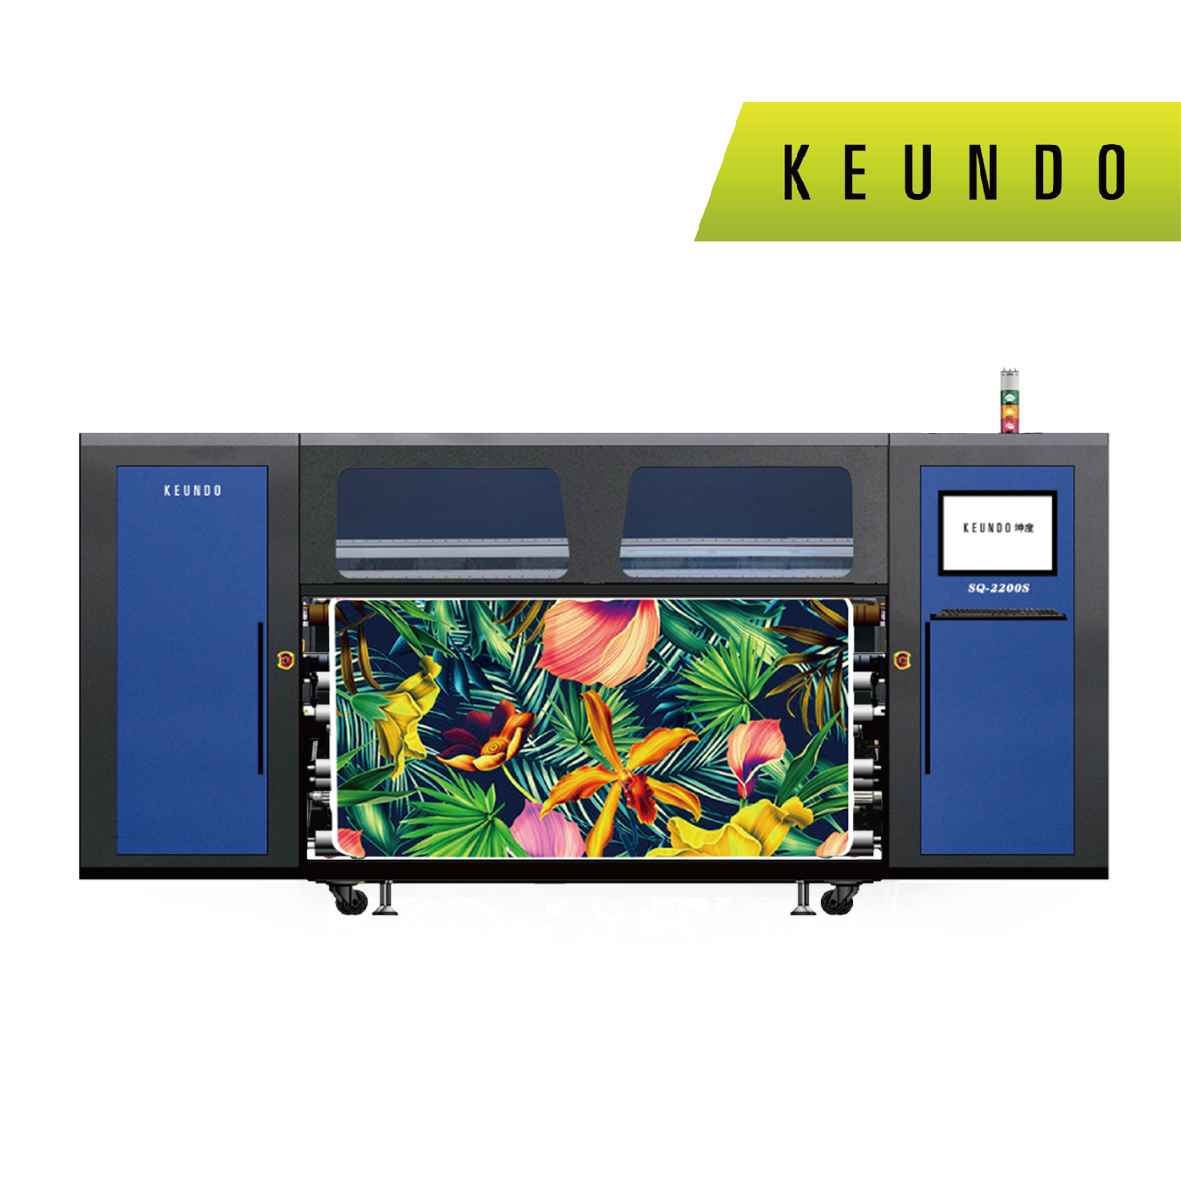 SQ-2208S Industrial Rubber Roll Dye Sublimation Printer with Eight S3200 Heads